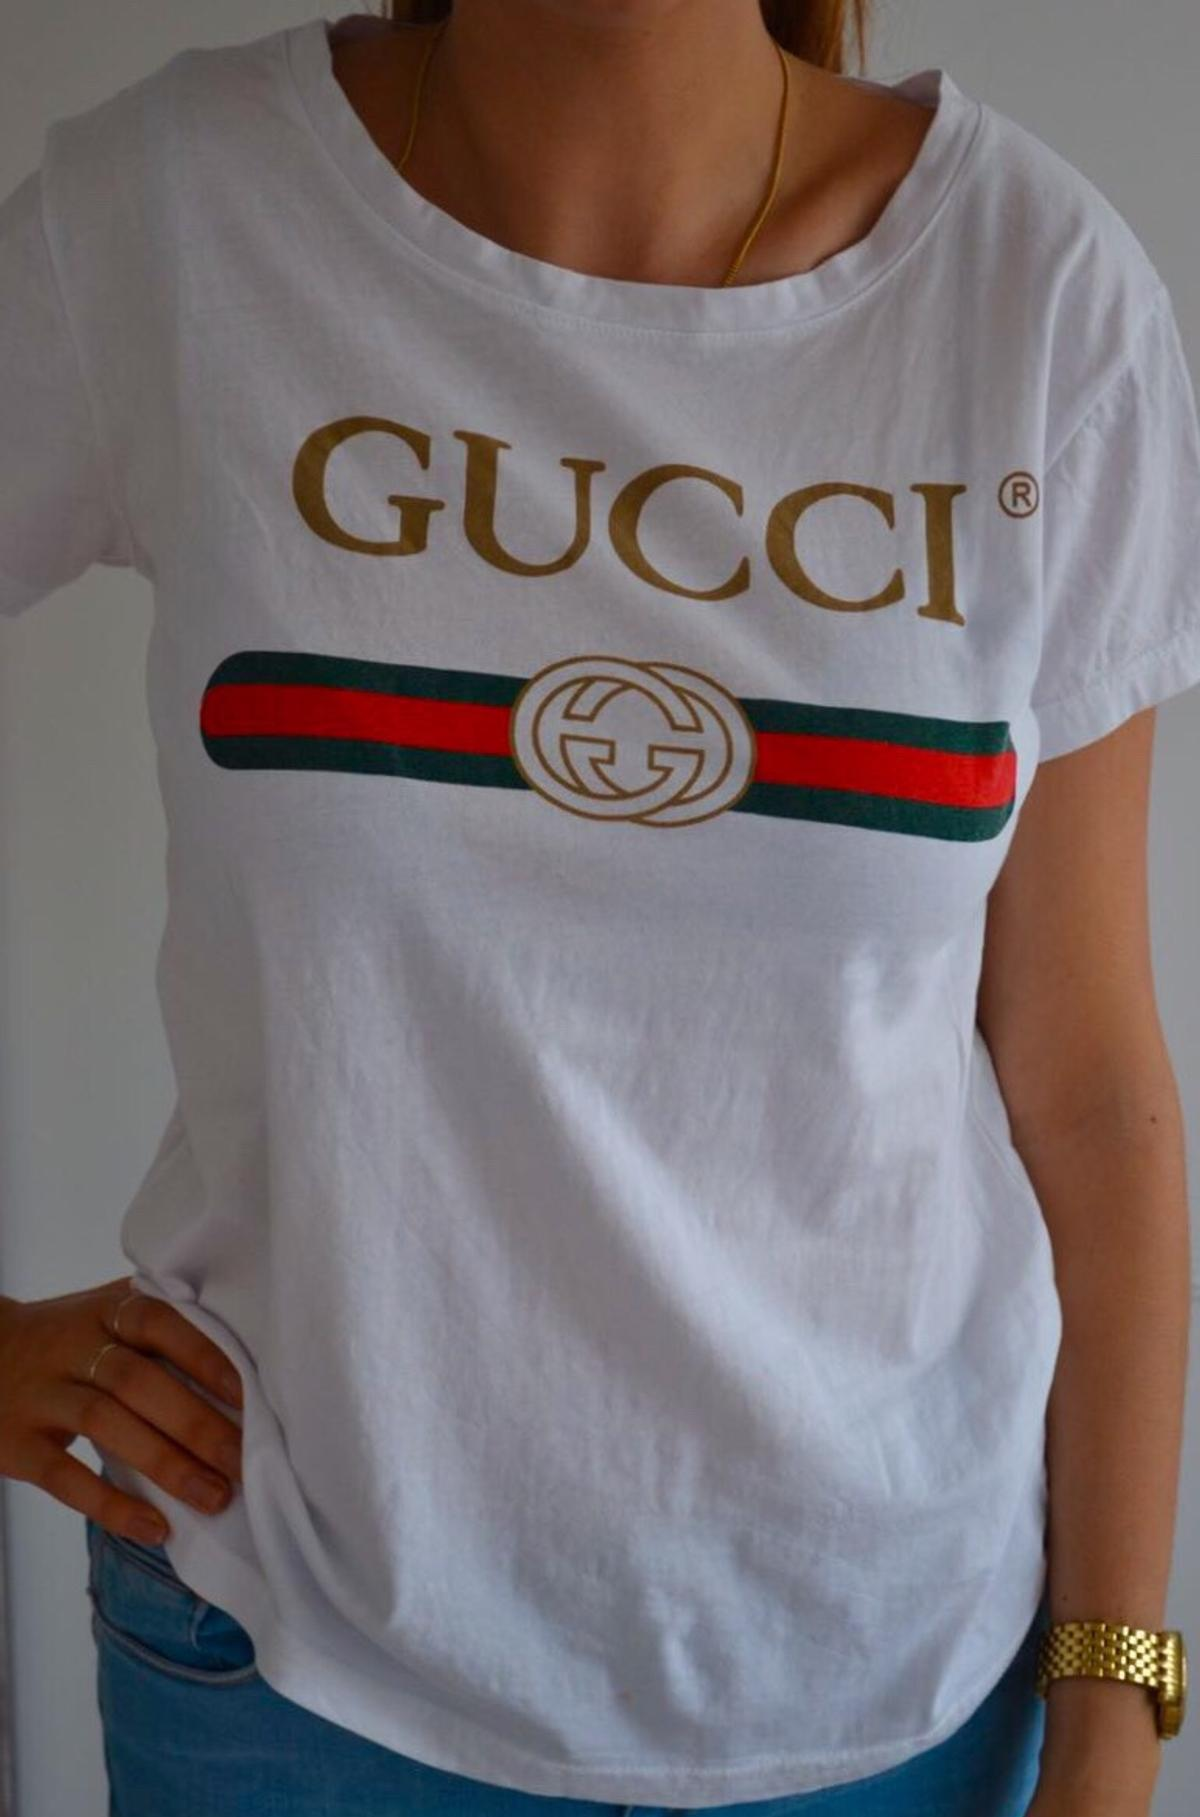 cf6d135b2 Gucci look a like tshirt in 50129 Bergheim for €15.00 for sale - Shpock